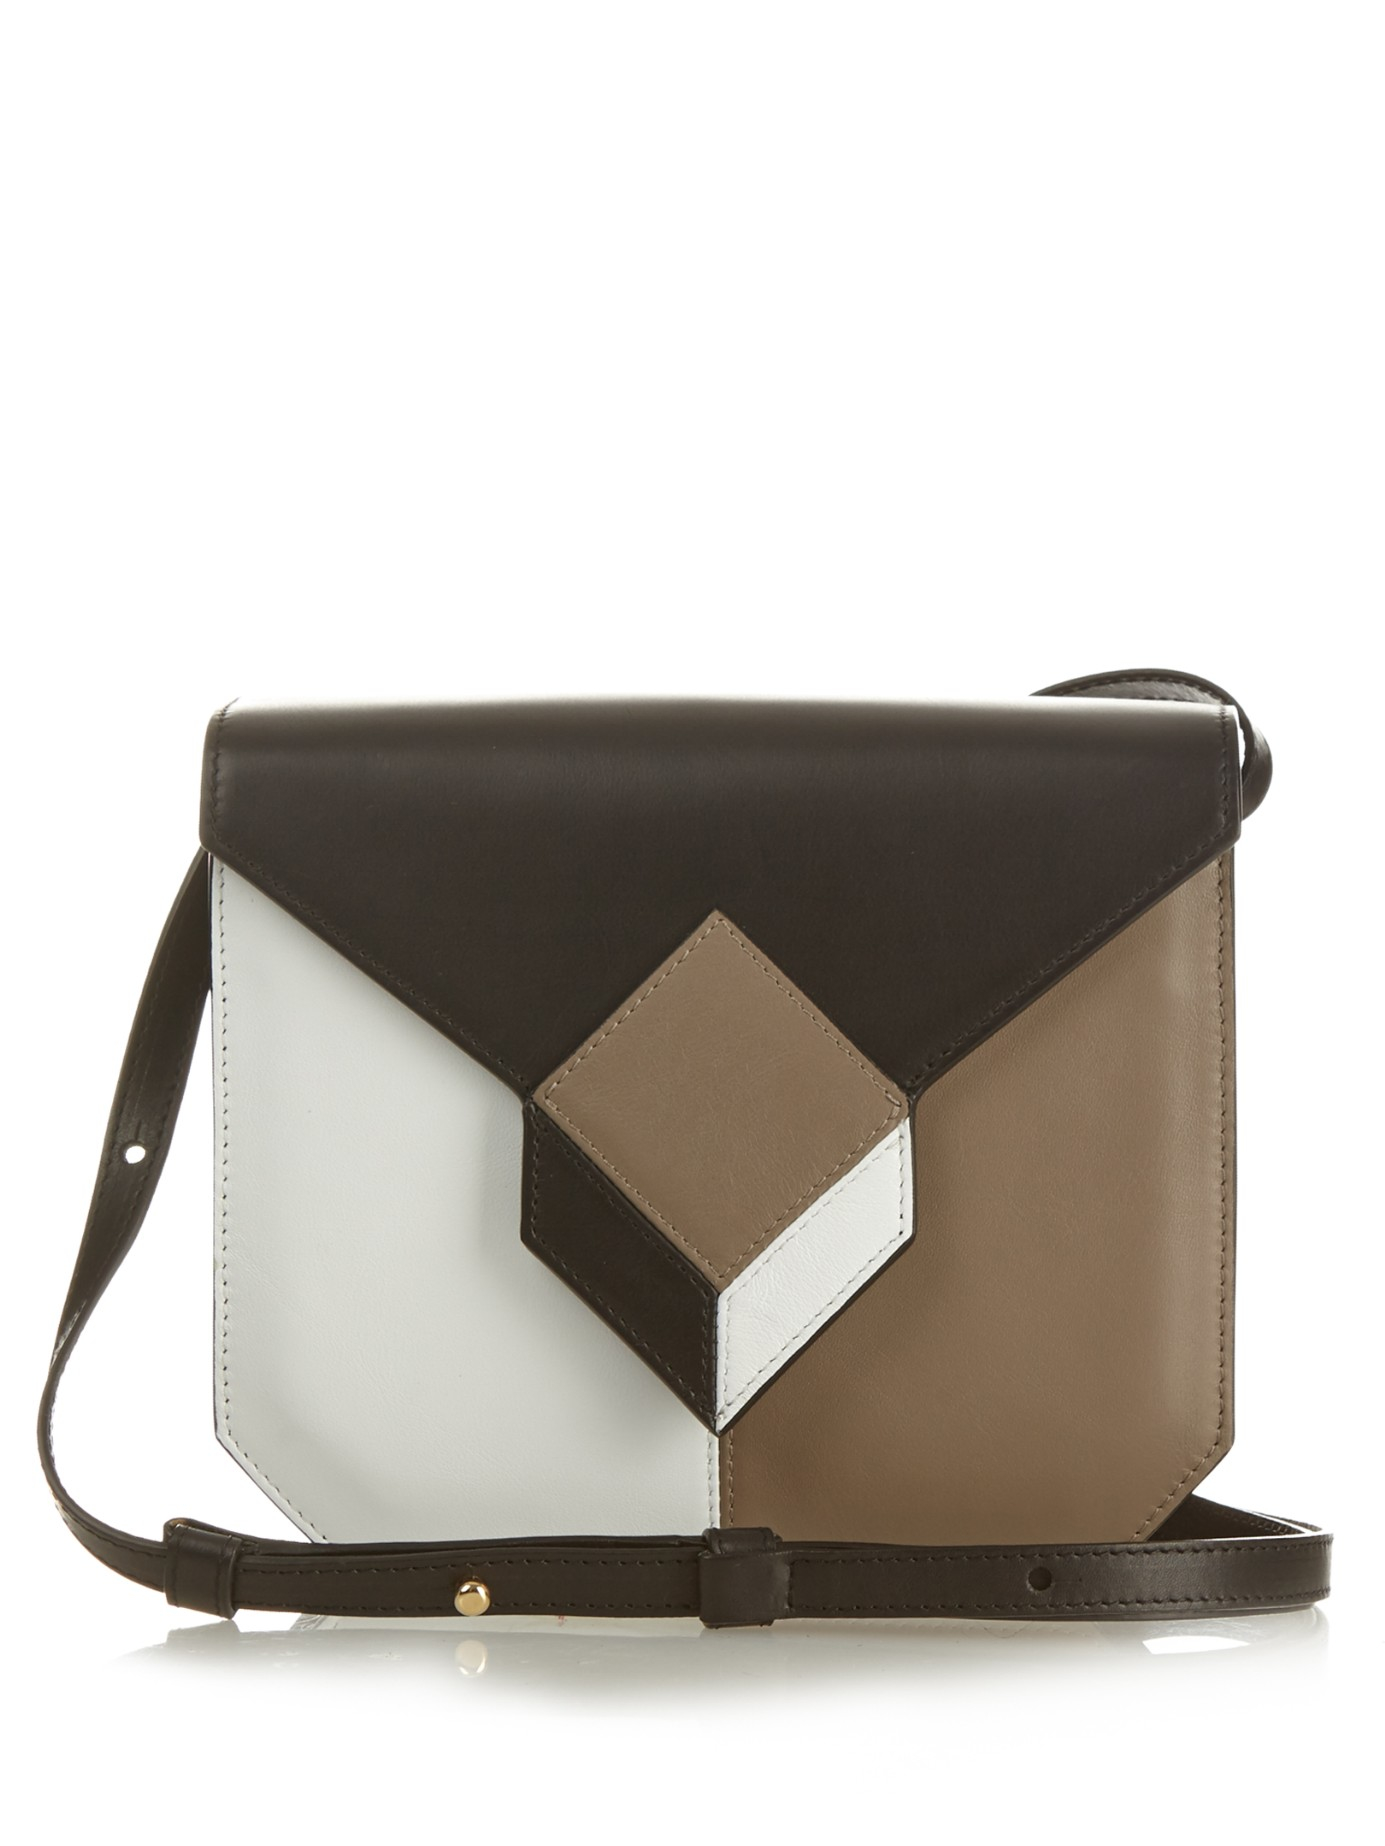 Exclusive Cheap Price Cheap Sale 2018 Unisex Prism Quilted crossbody bag Pierre Hardy fI5WNIrOB3